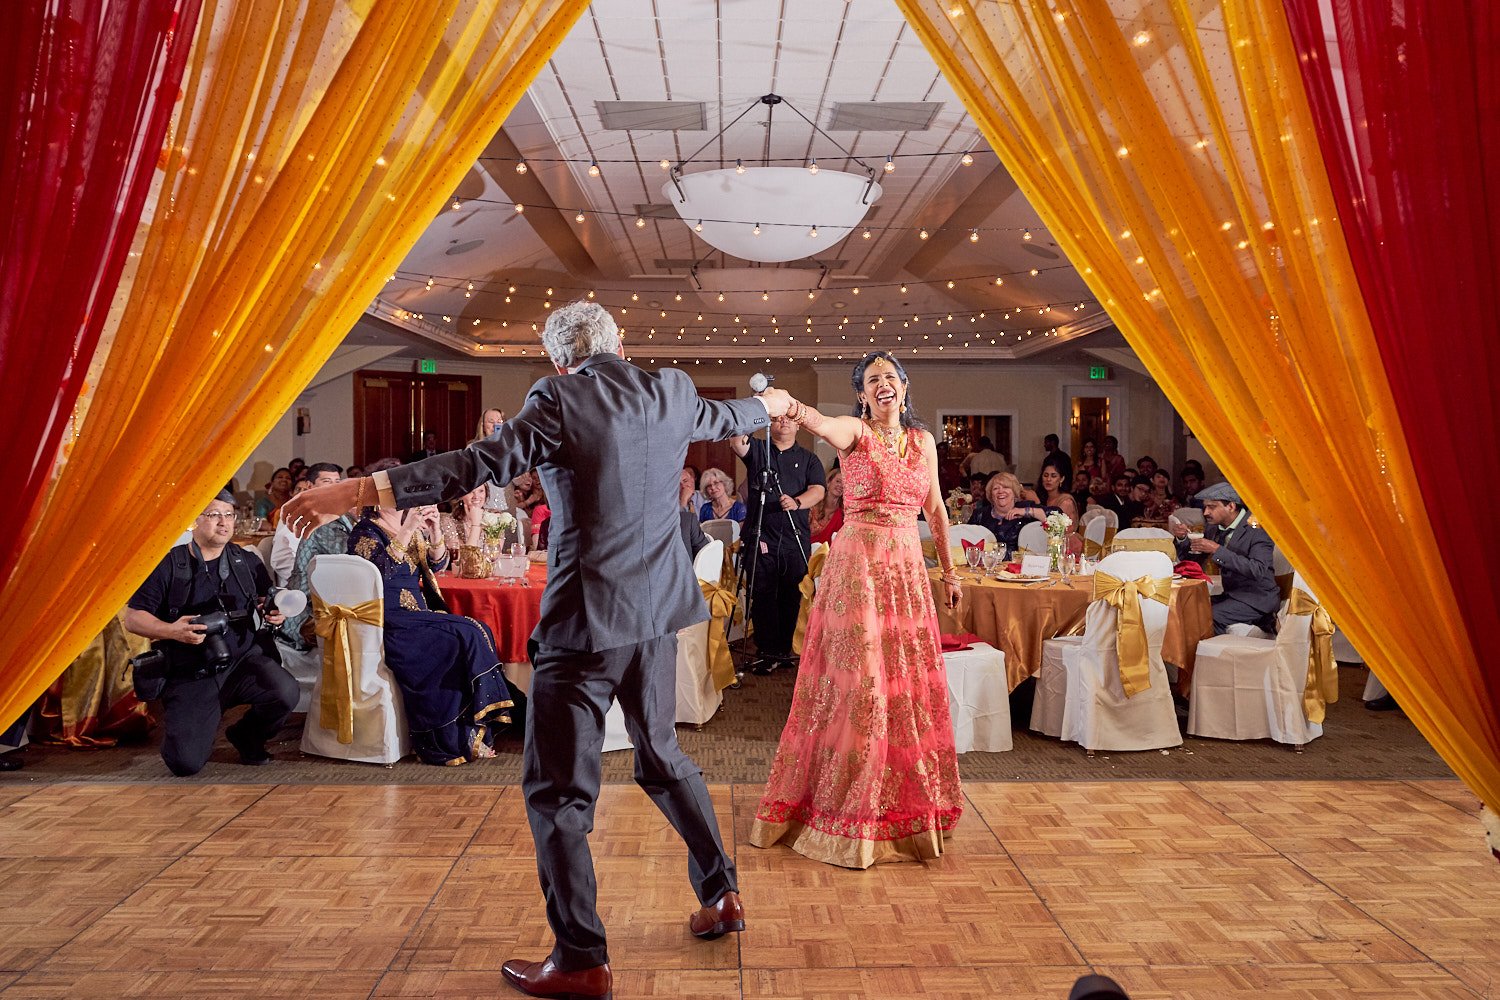 saratoga-country-club-wedding-reception-photography-by-afewgoodclicks-at 39.jpg